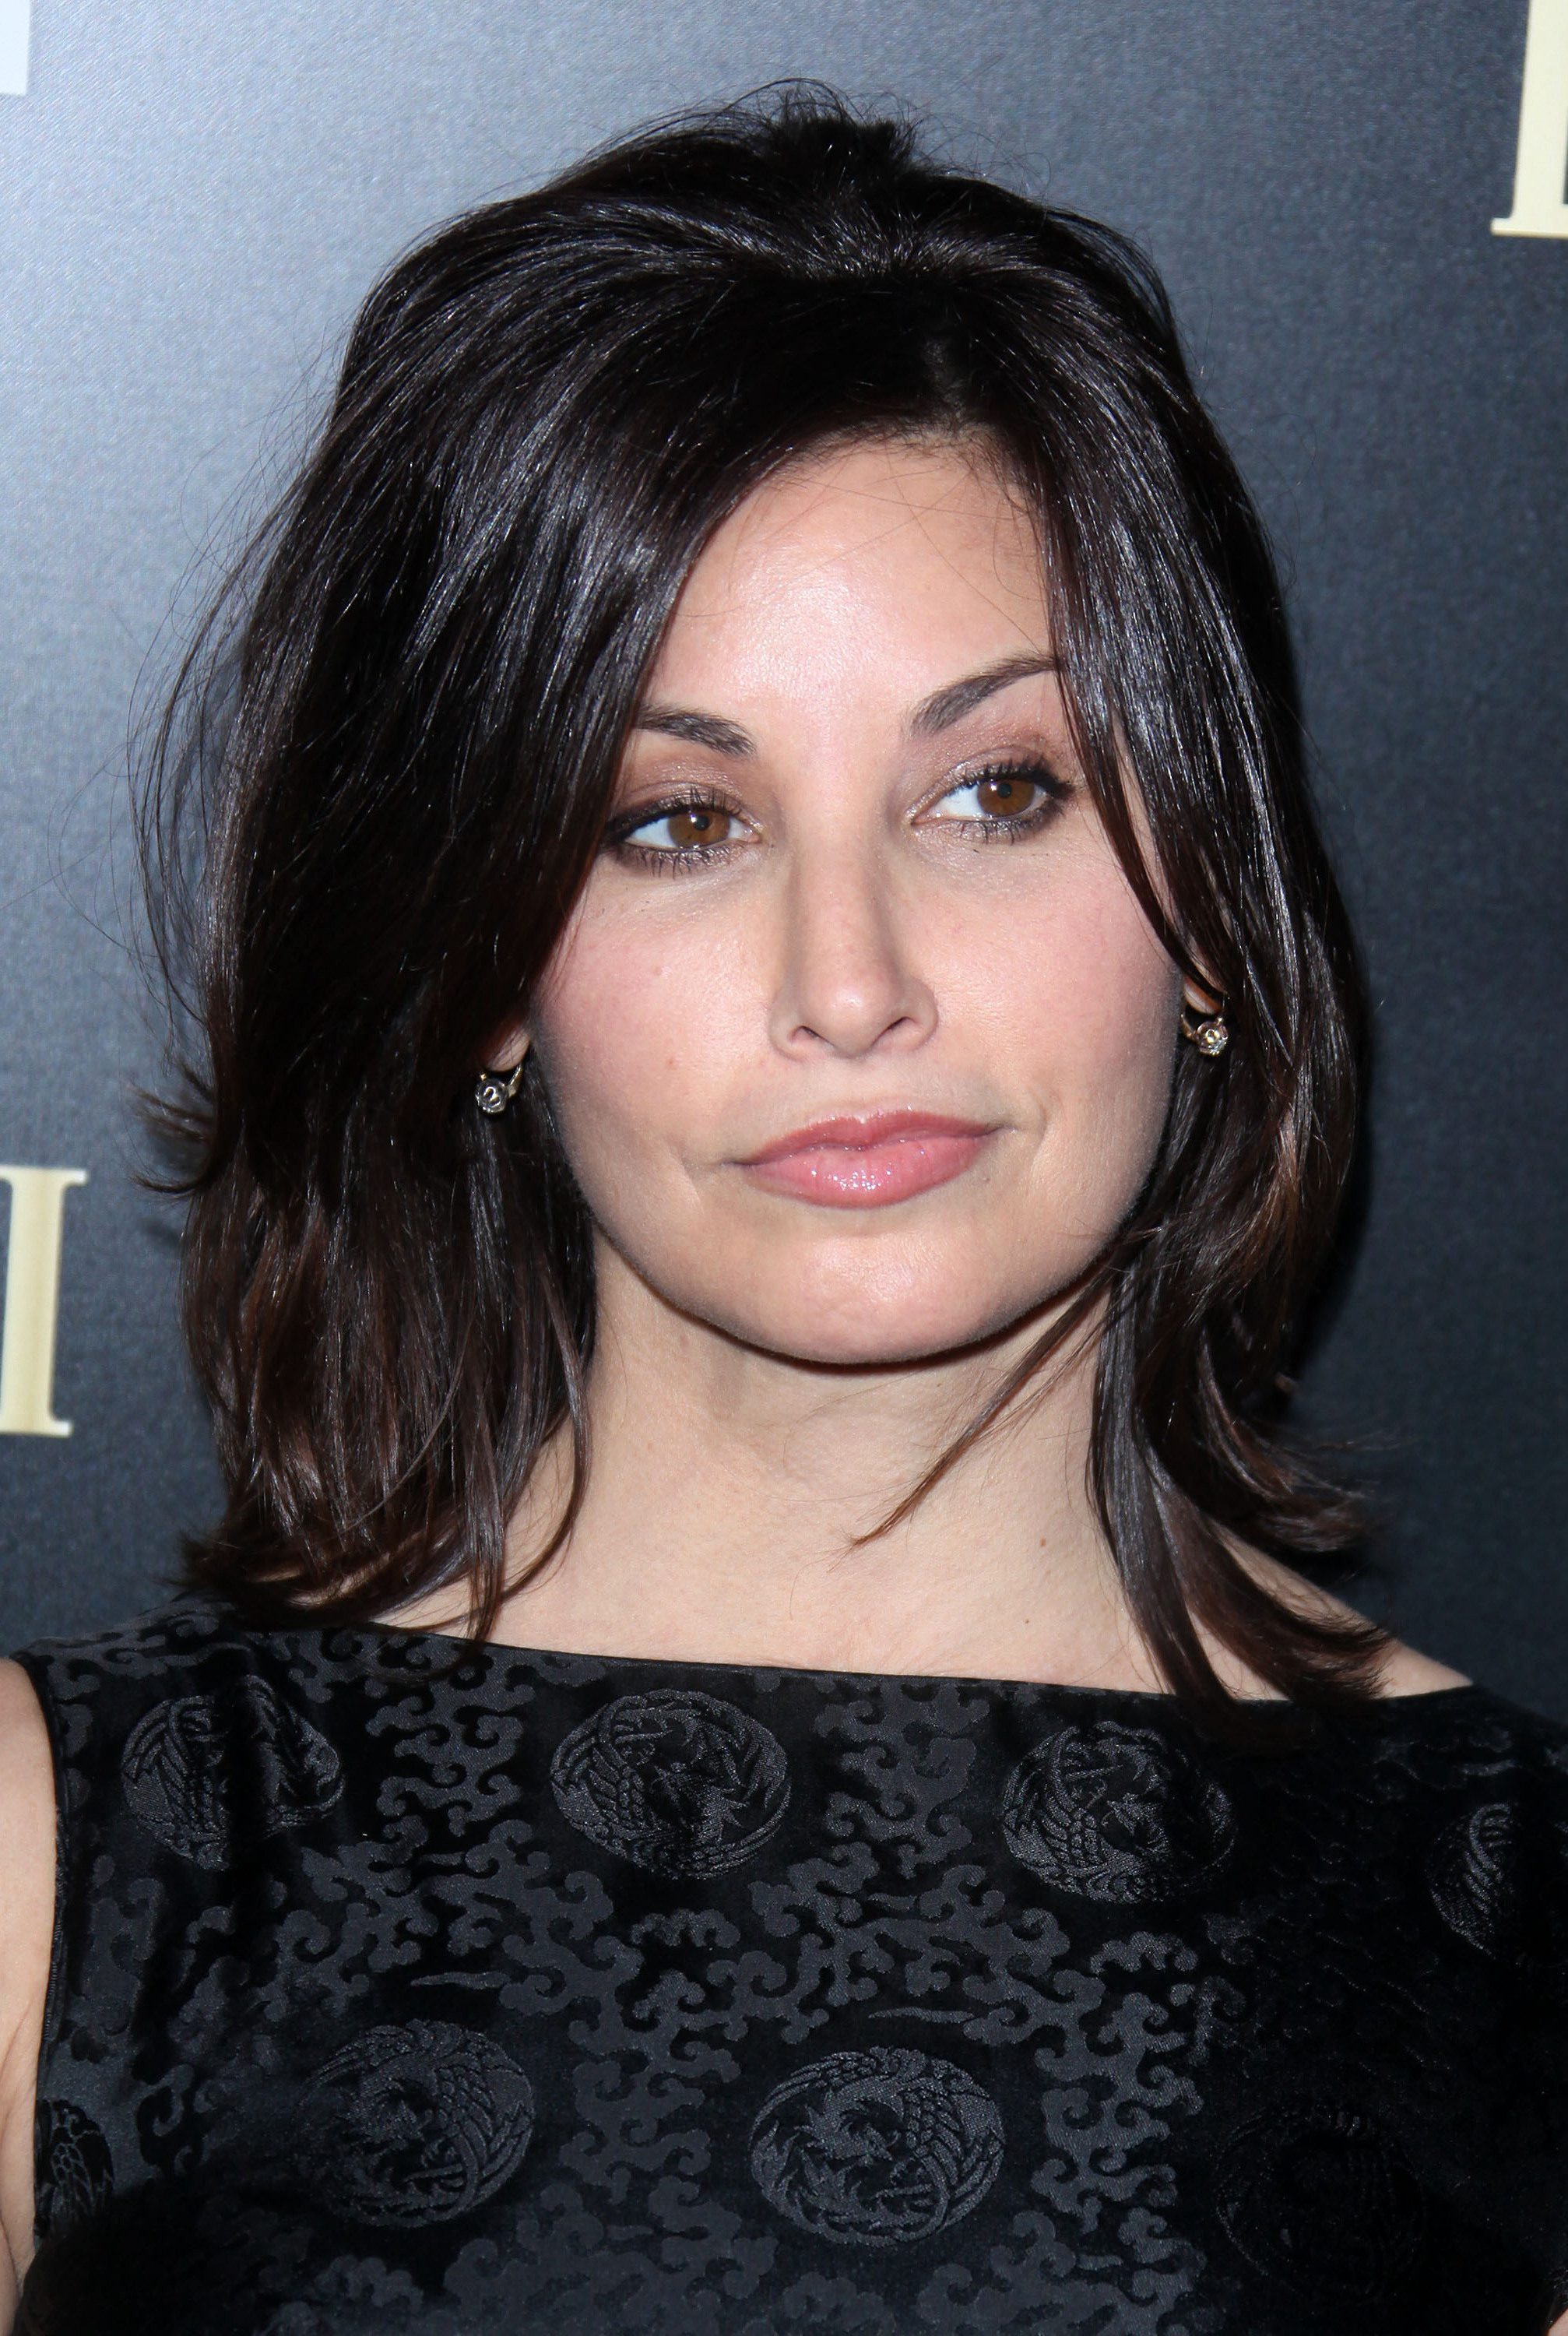 Fluffed Shag with Twin Fringe by Gina Gershon